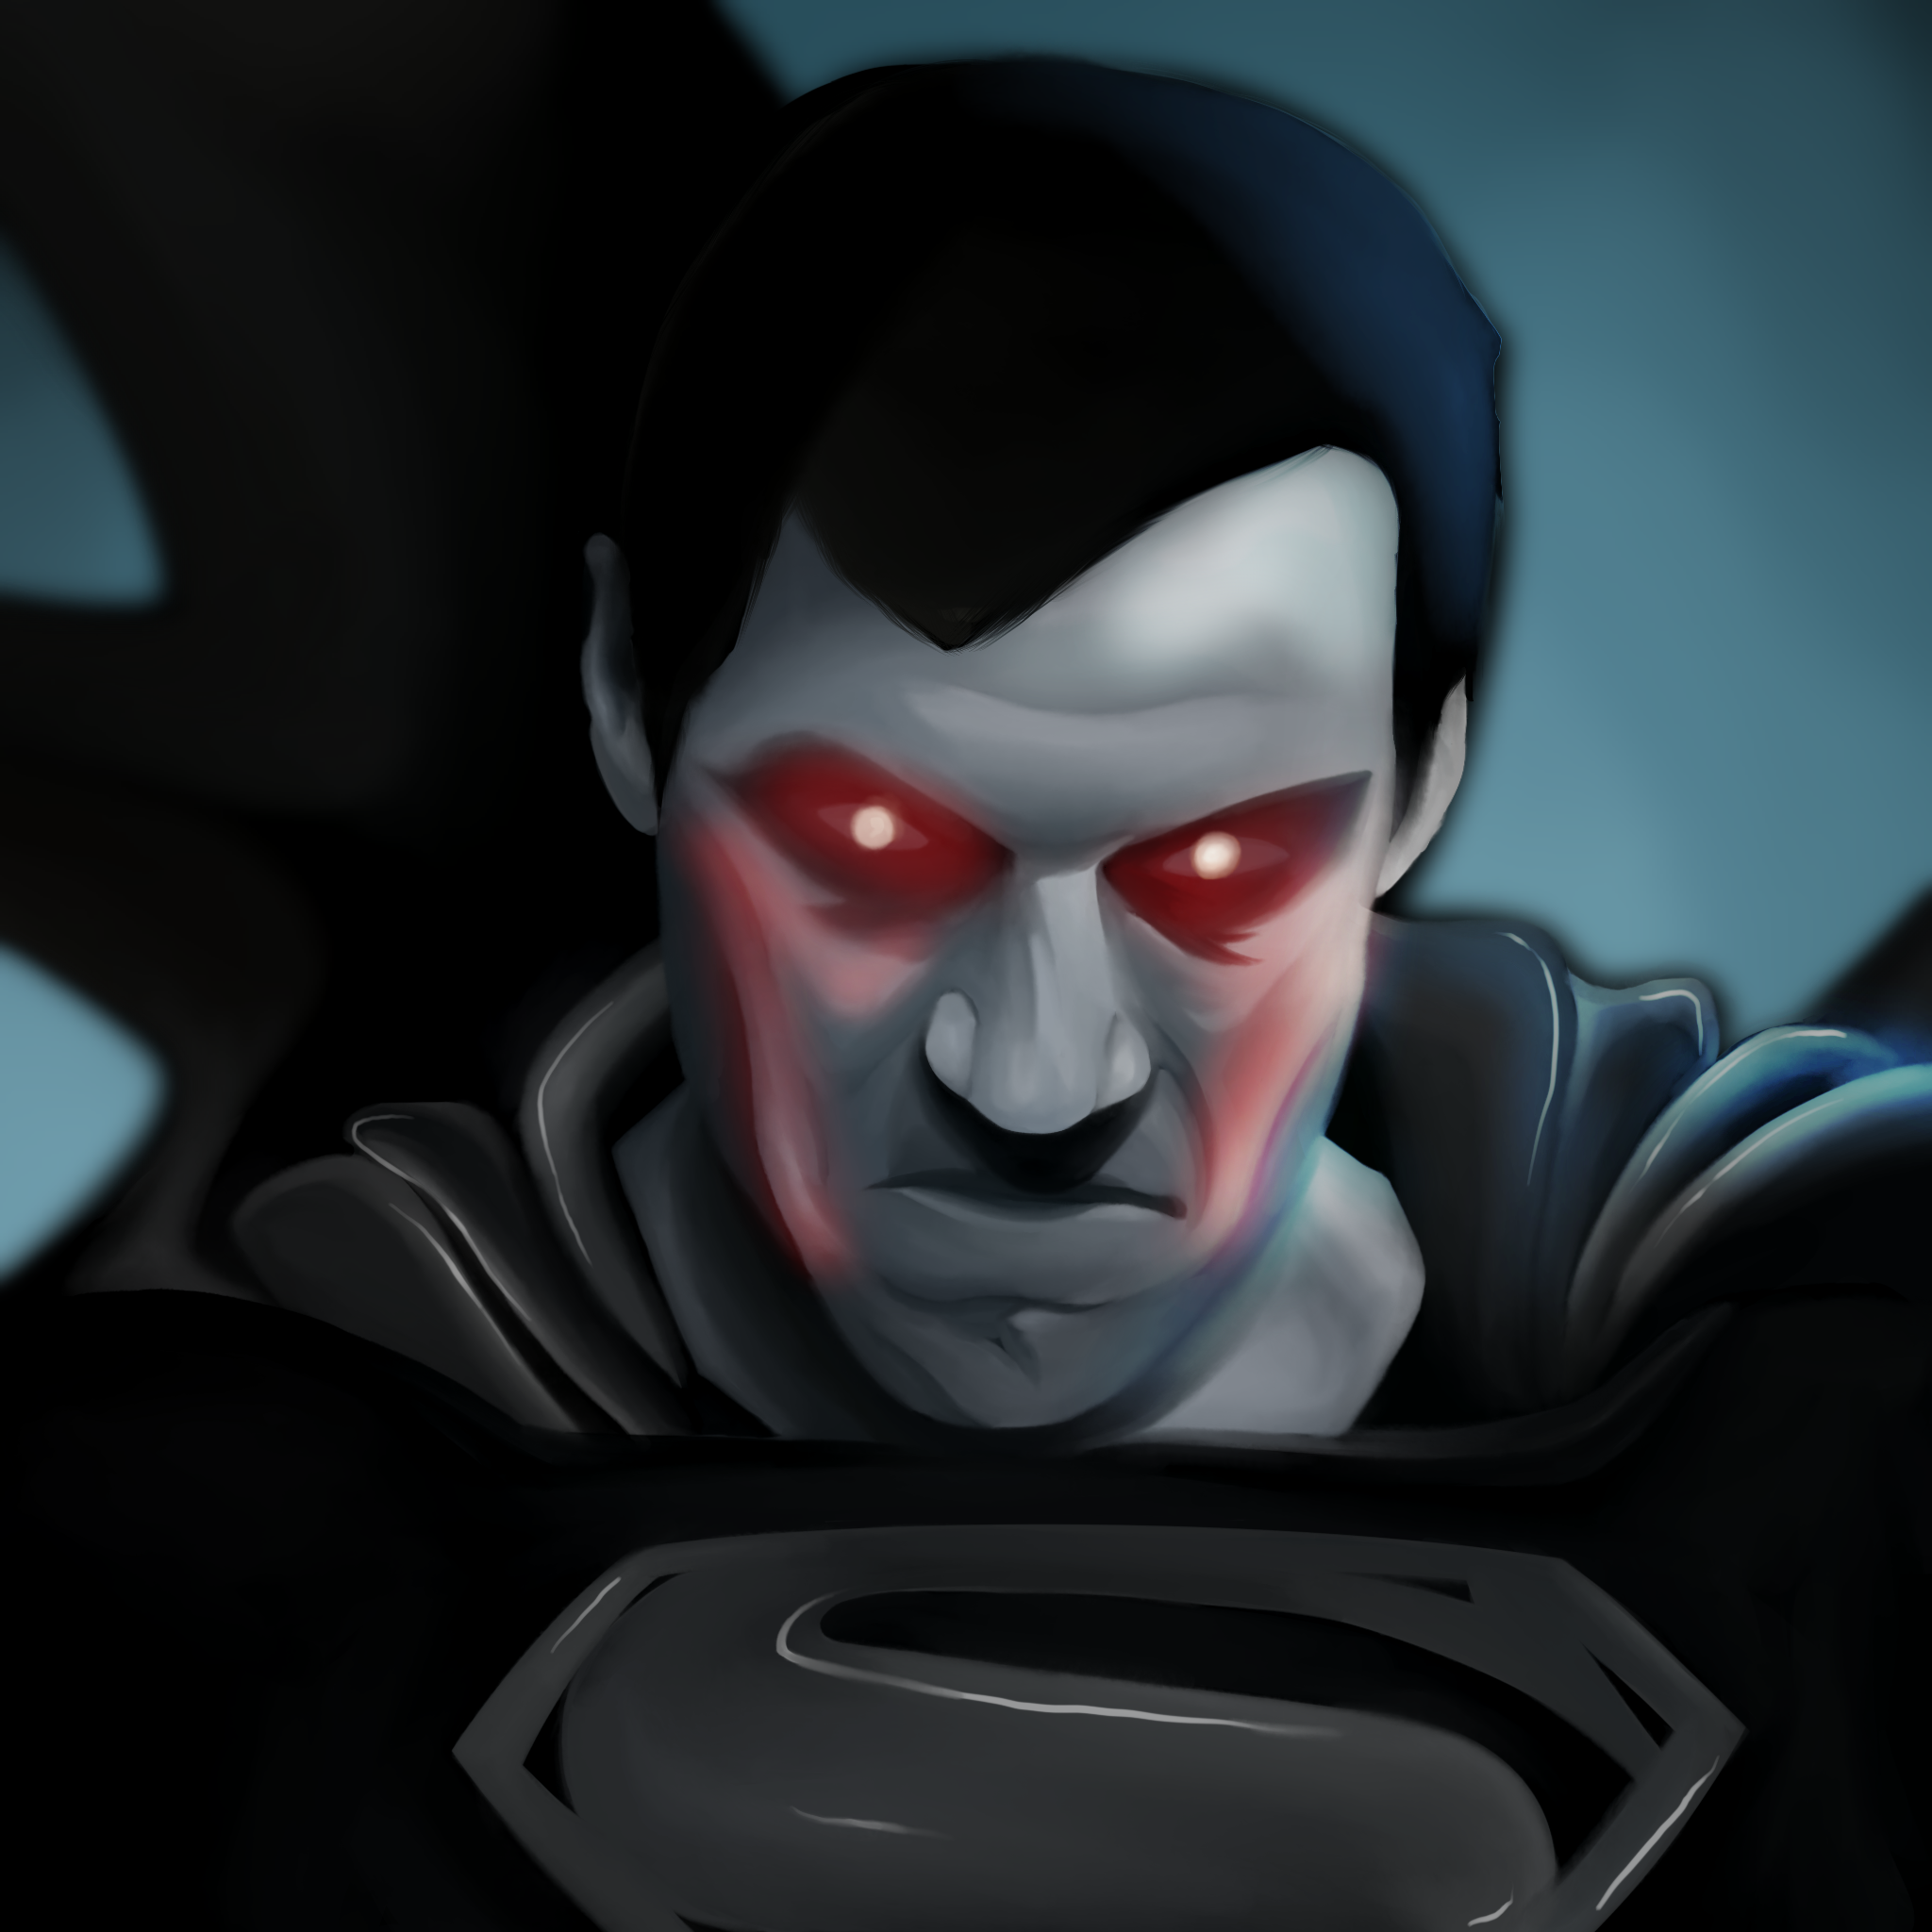 A painting of angry Superman in the black suit with laser in the eyes.